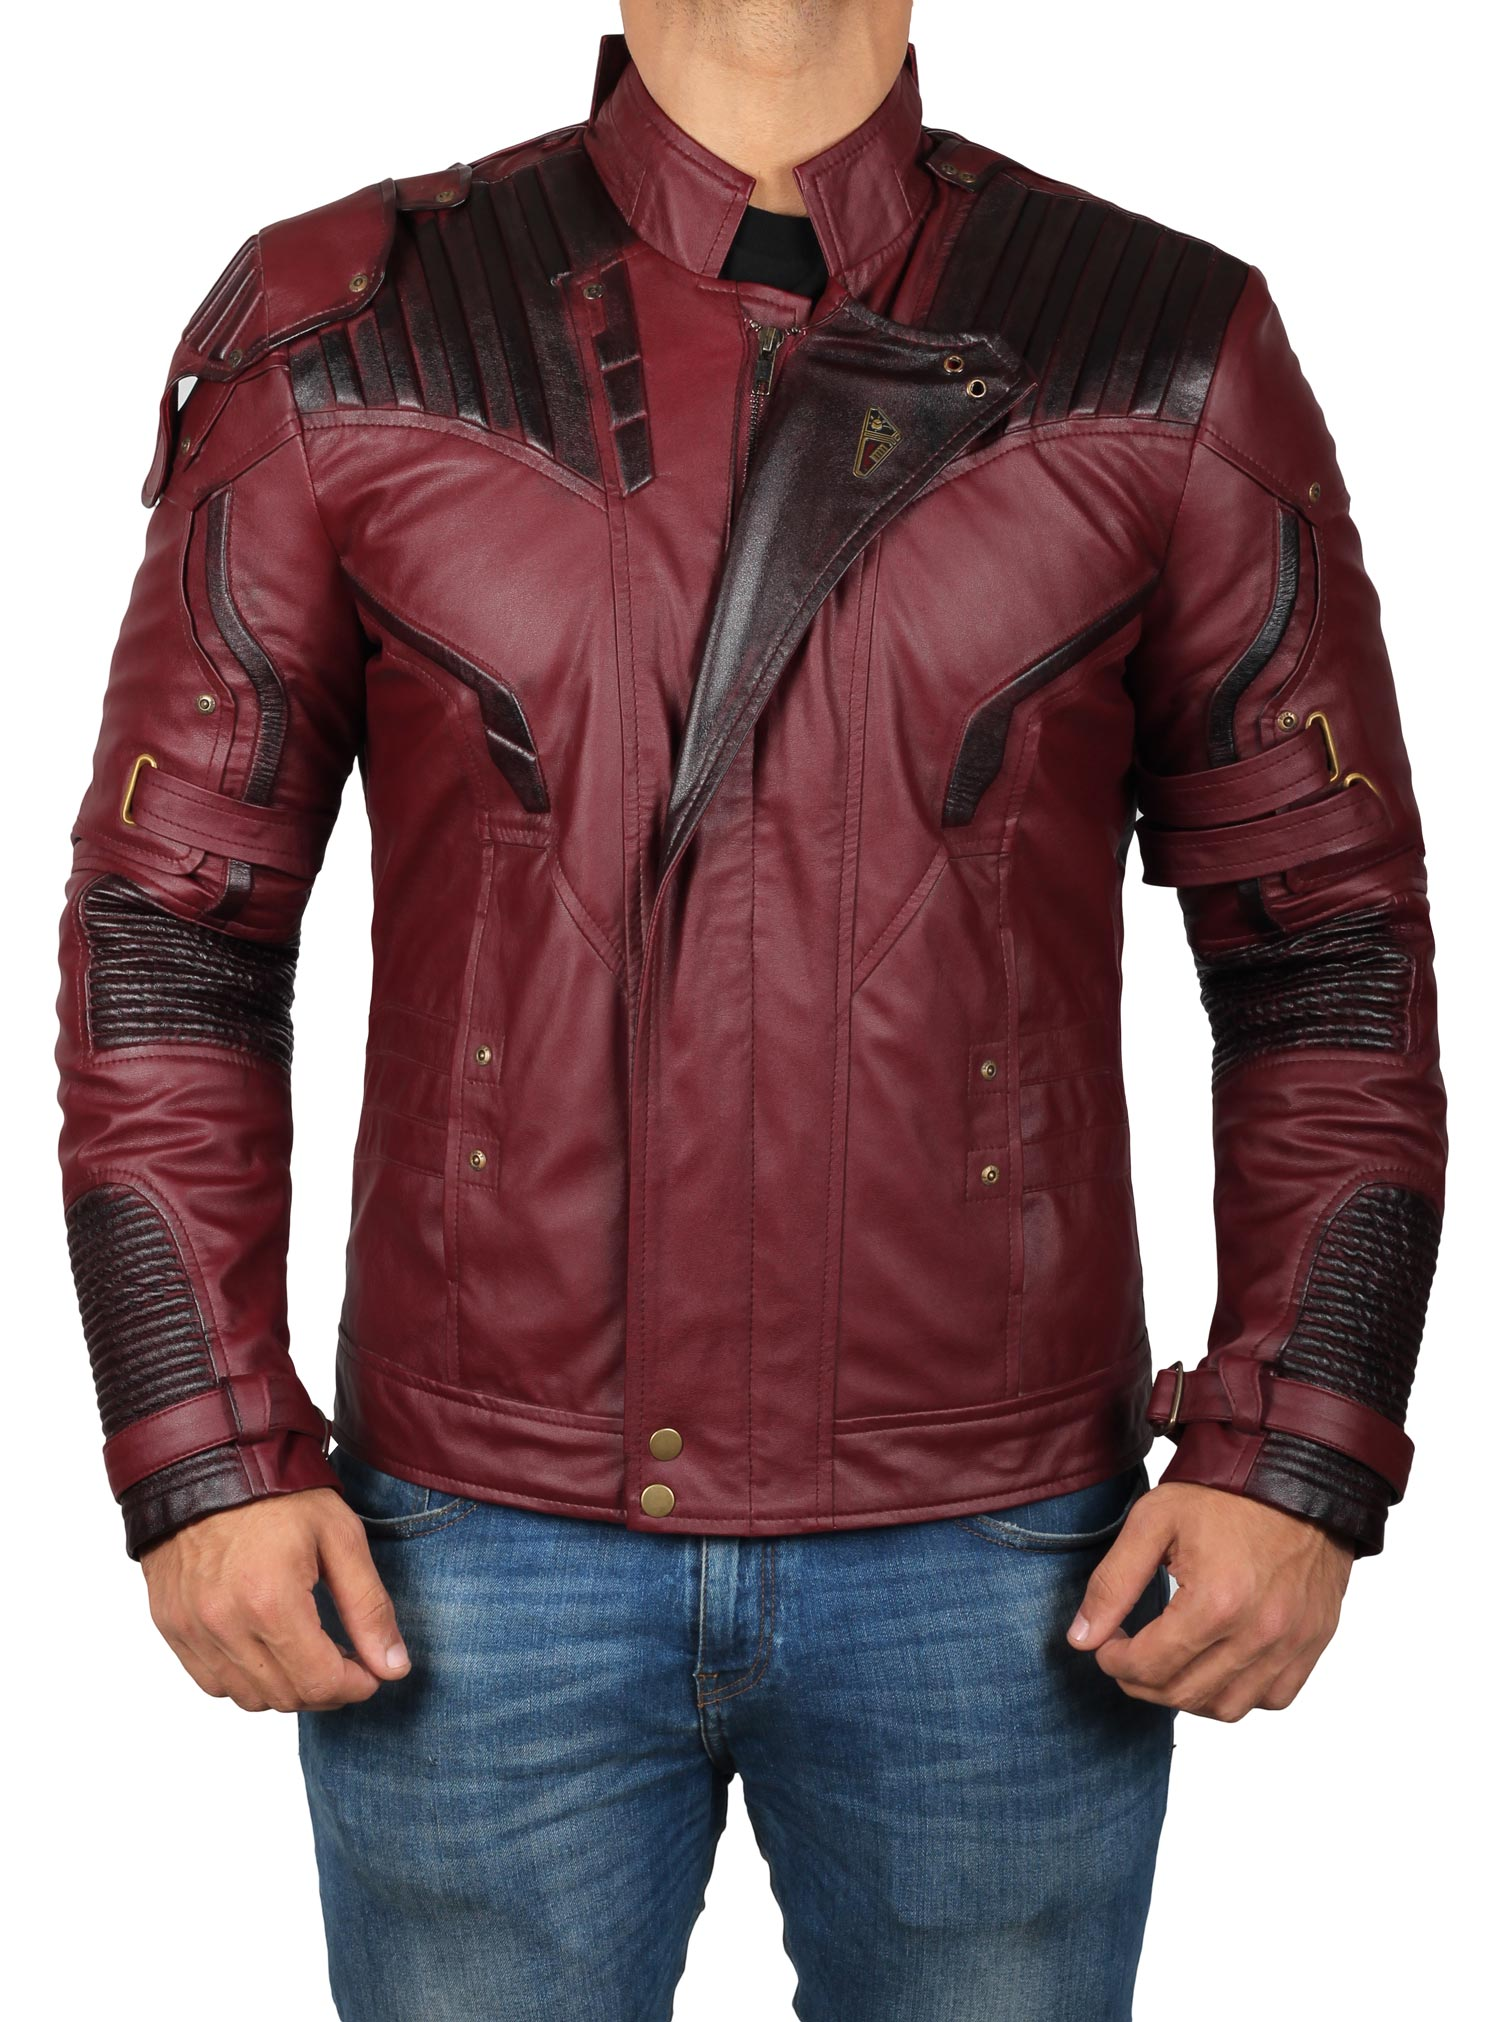 0a8627536 Star Lord Jacket from Avengers Endgame   iendgame